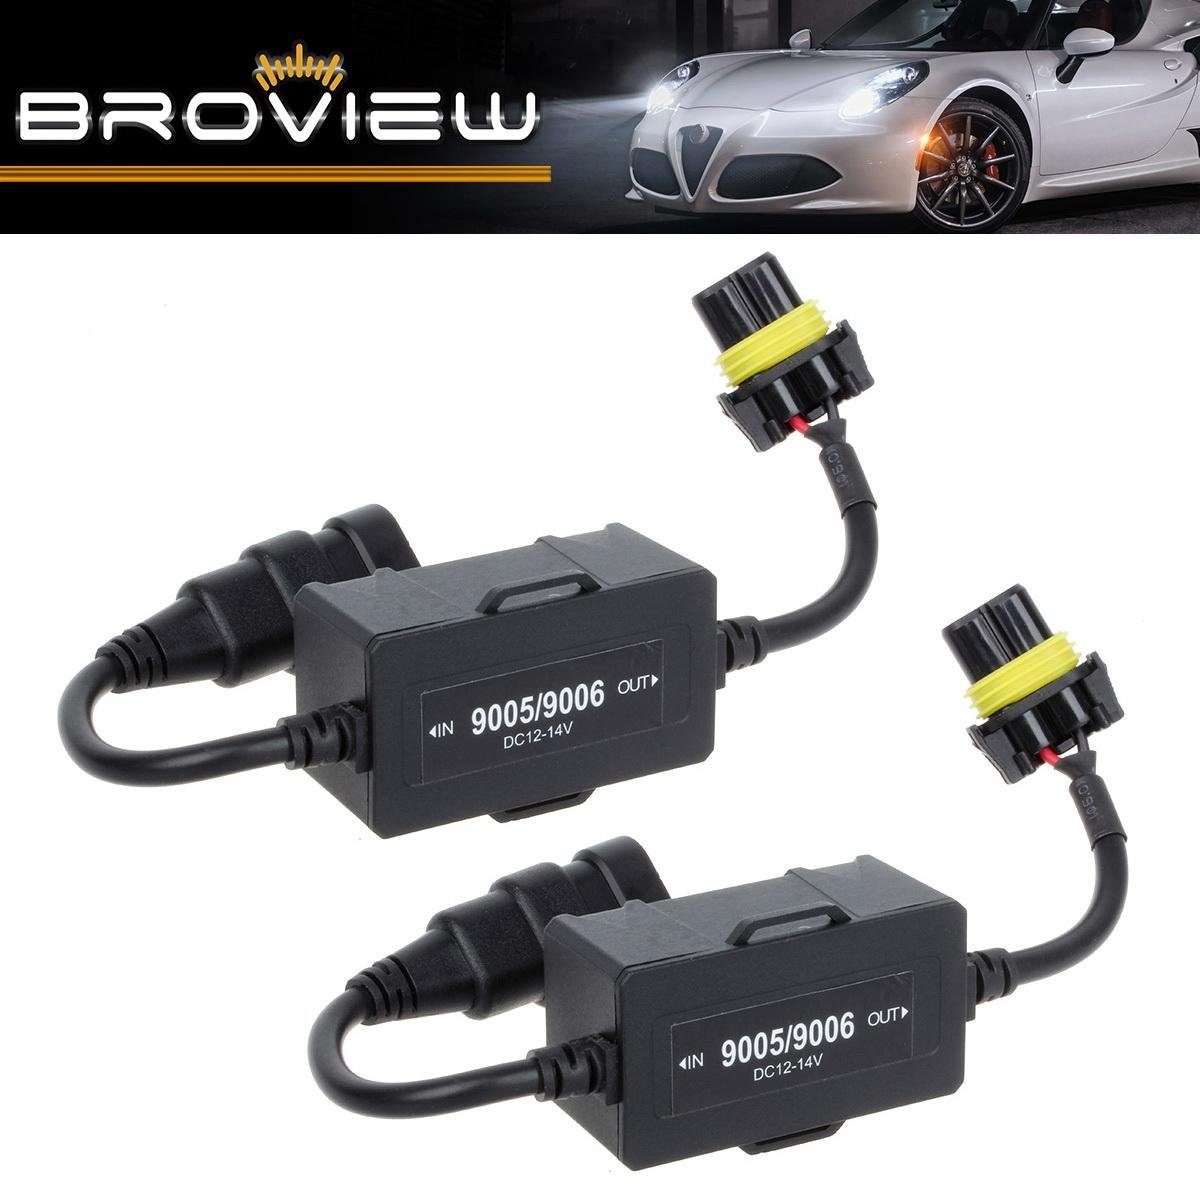 BROVIEW Canbus Series -For 9006 HB4 9012 LED Headlights Conversion Kit Anti Flickering -Wire Haress Load Resistor Decorder Canbus Error Free Computer Warning Canceller -1 Yr Warranty -(2pcs/1 Pair)